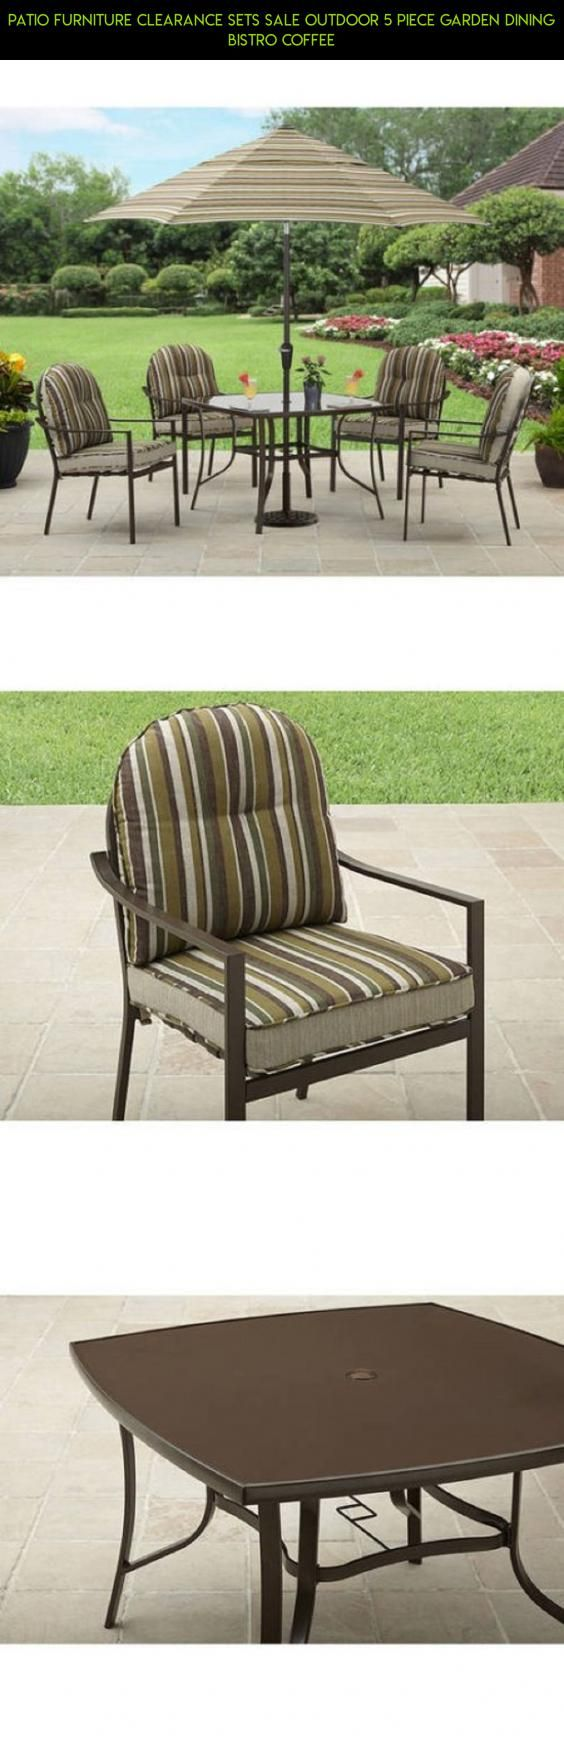 Outdoor furniture clearance - Patio Furniture Clearance Sets Sale Outdoor 5 Piece Garden Dining Bistro Coffee Clearance Furniture